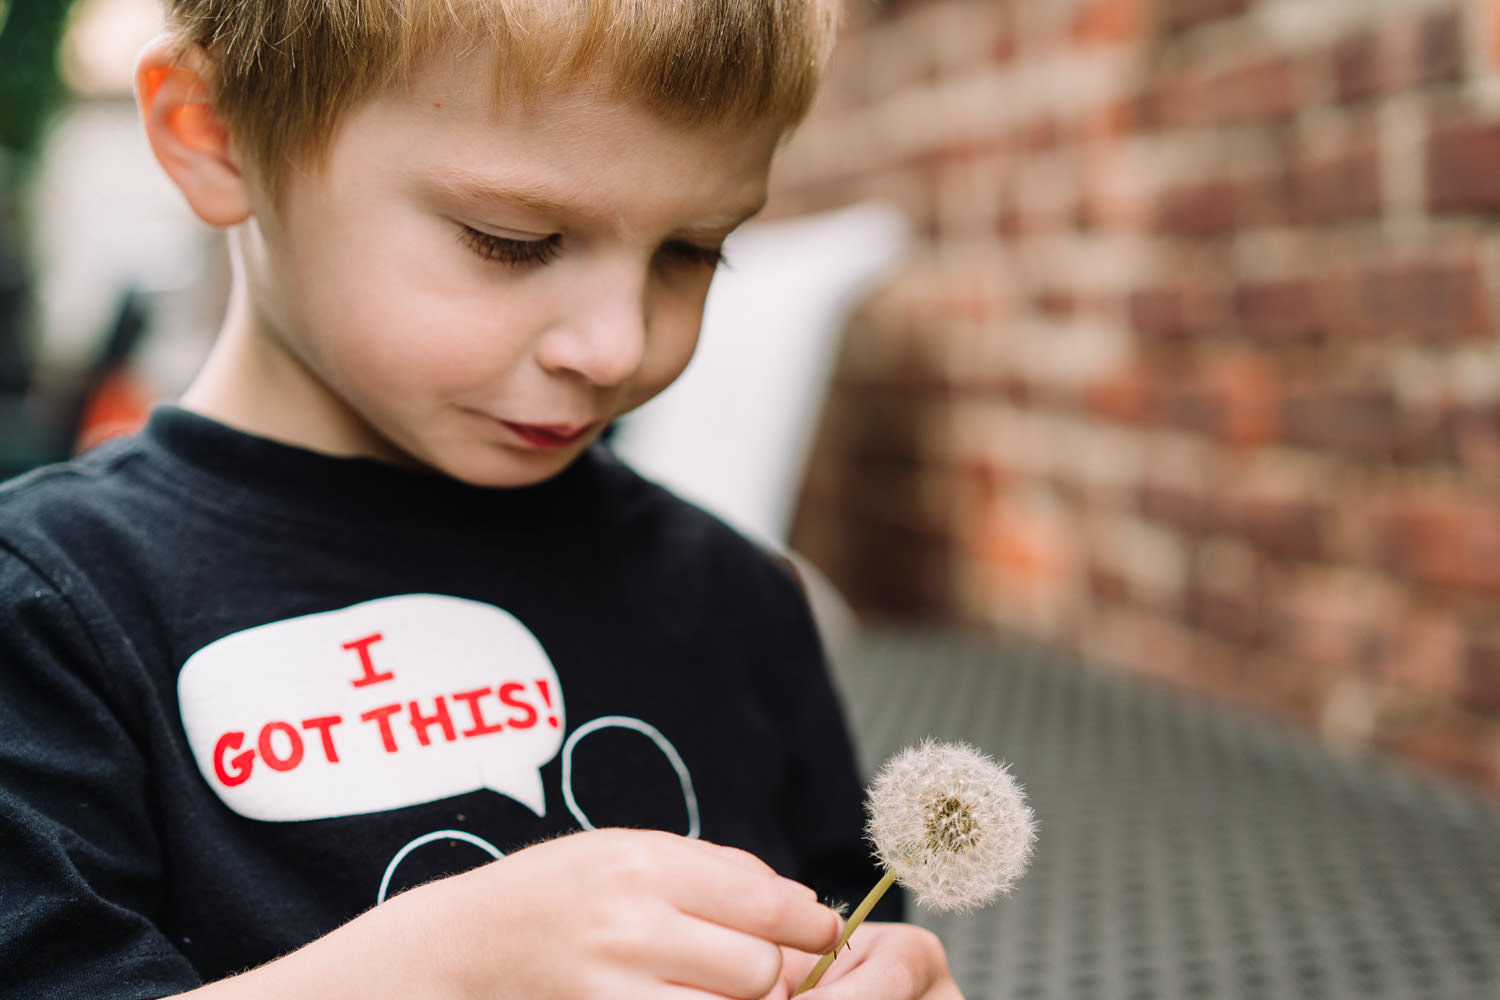 A little boy holds a dandelion.